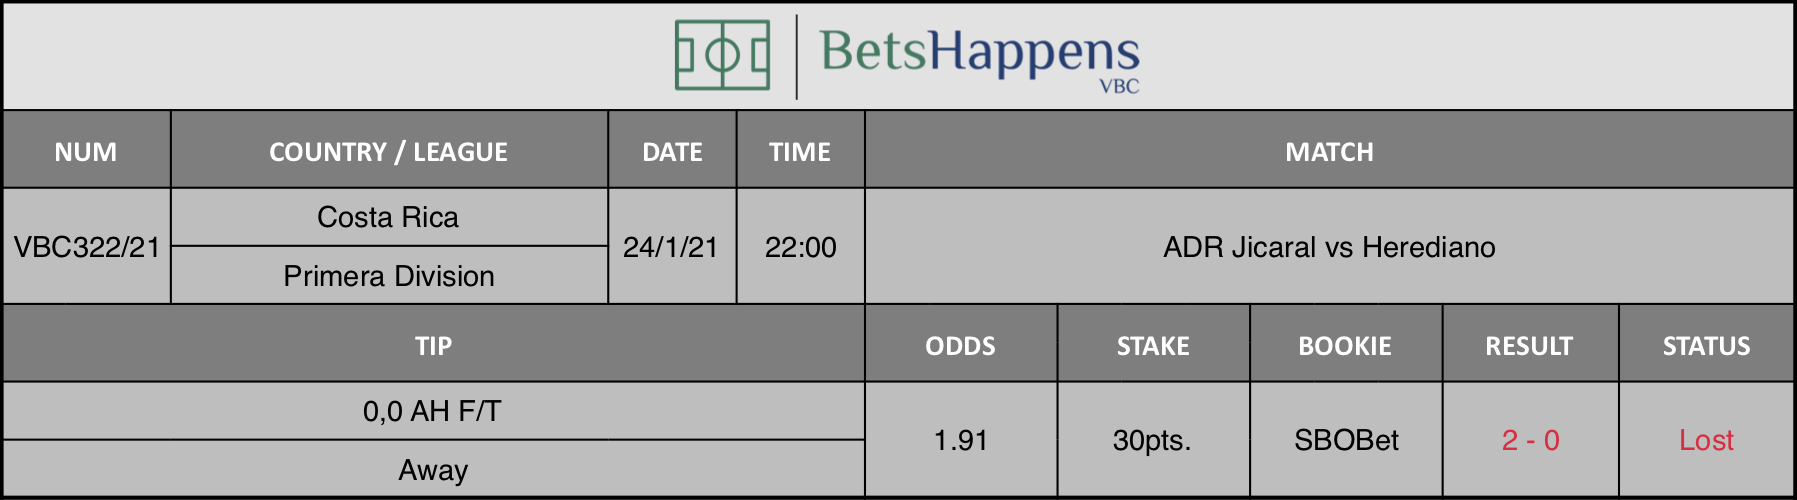 Results of our tip for the ADR Jicaral vs Herediano match where 0,0 AH F/T  Away is recommended.